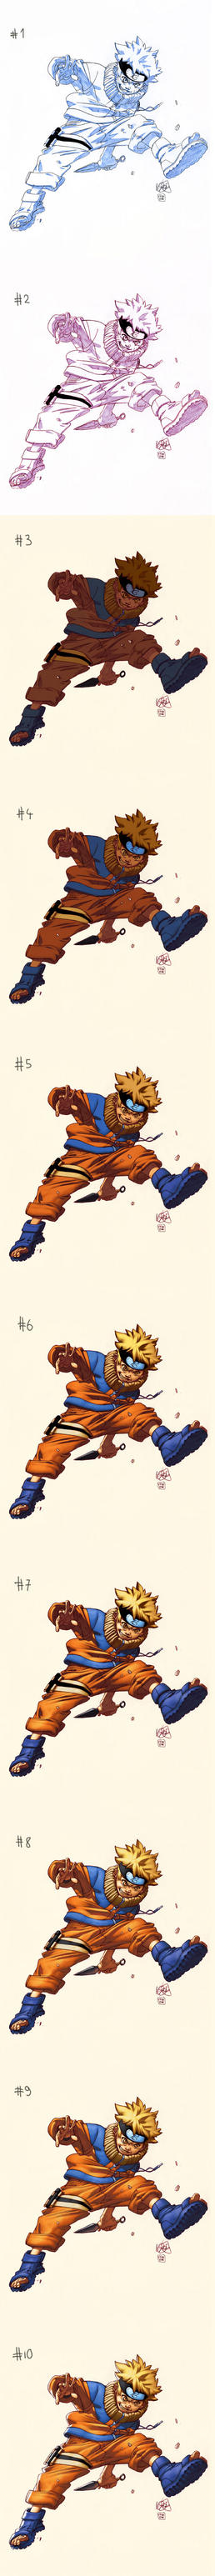 Naruto colors step by step by FabianMonk